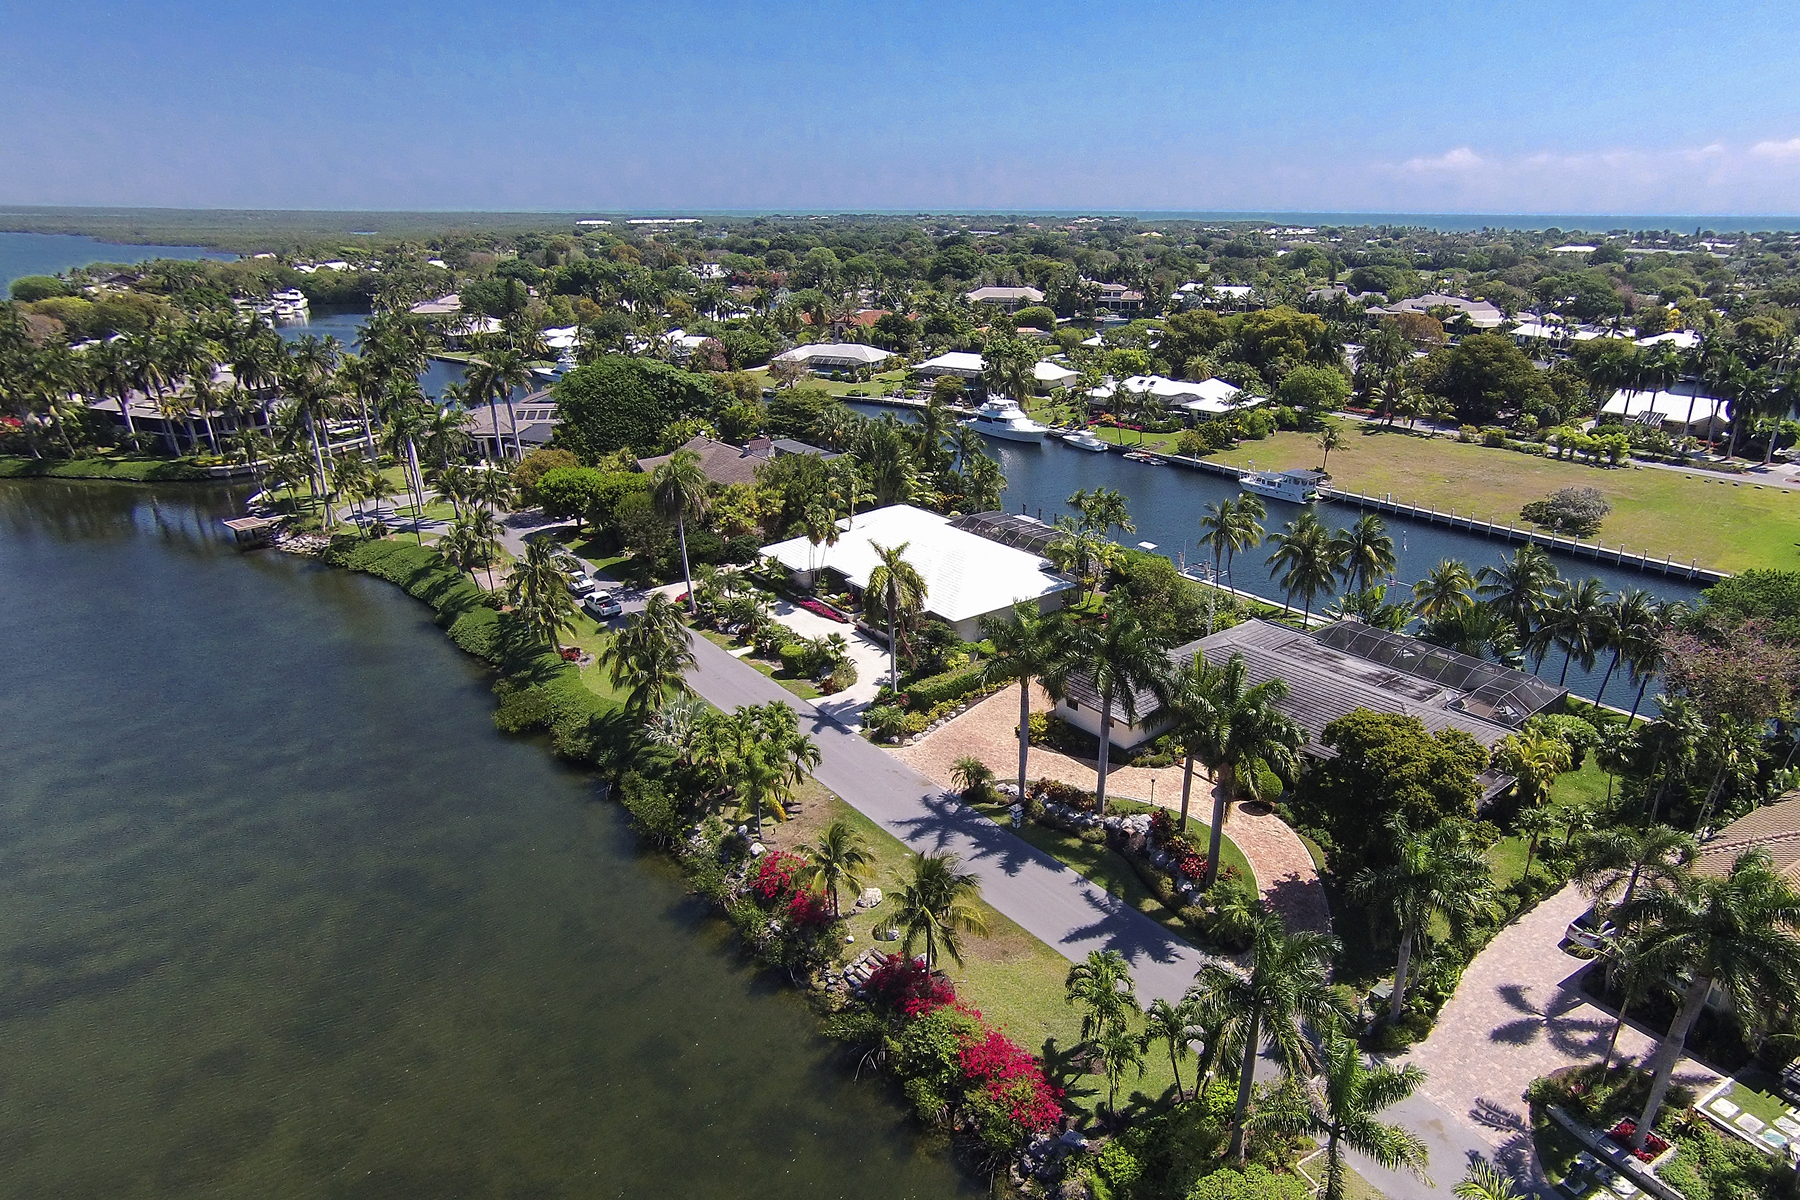 Single Family Home for Sale at Fabulous Waterfront Location at Ocean Reef 32 East Snapper Point Drive Ocean Reef Community, Key Largo, Florida, 33037 United States